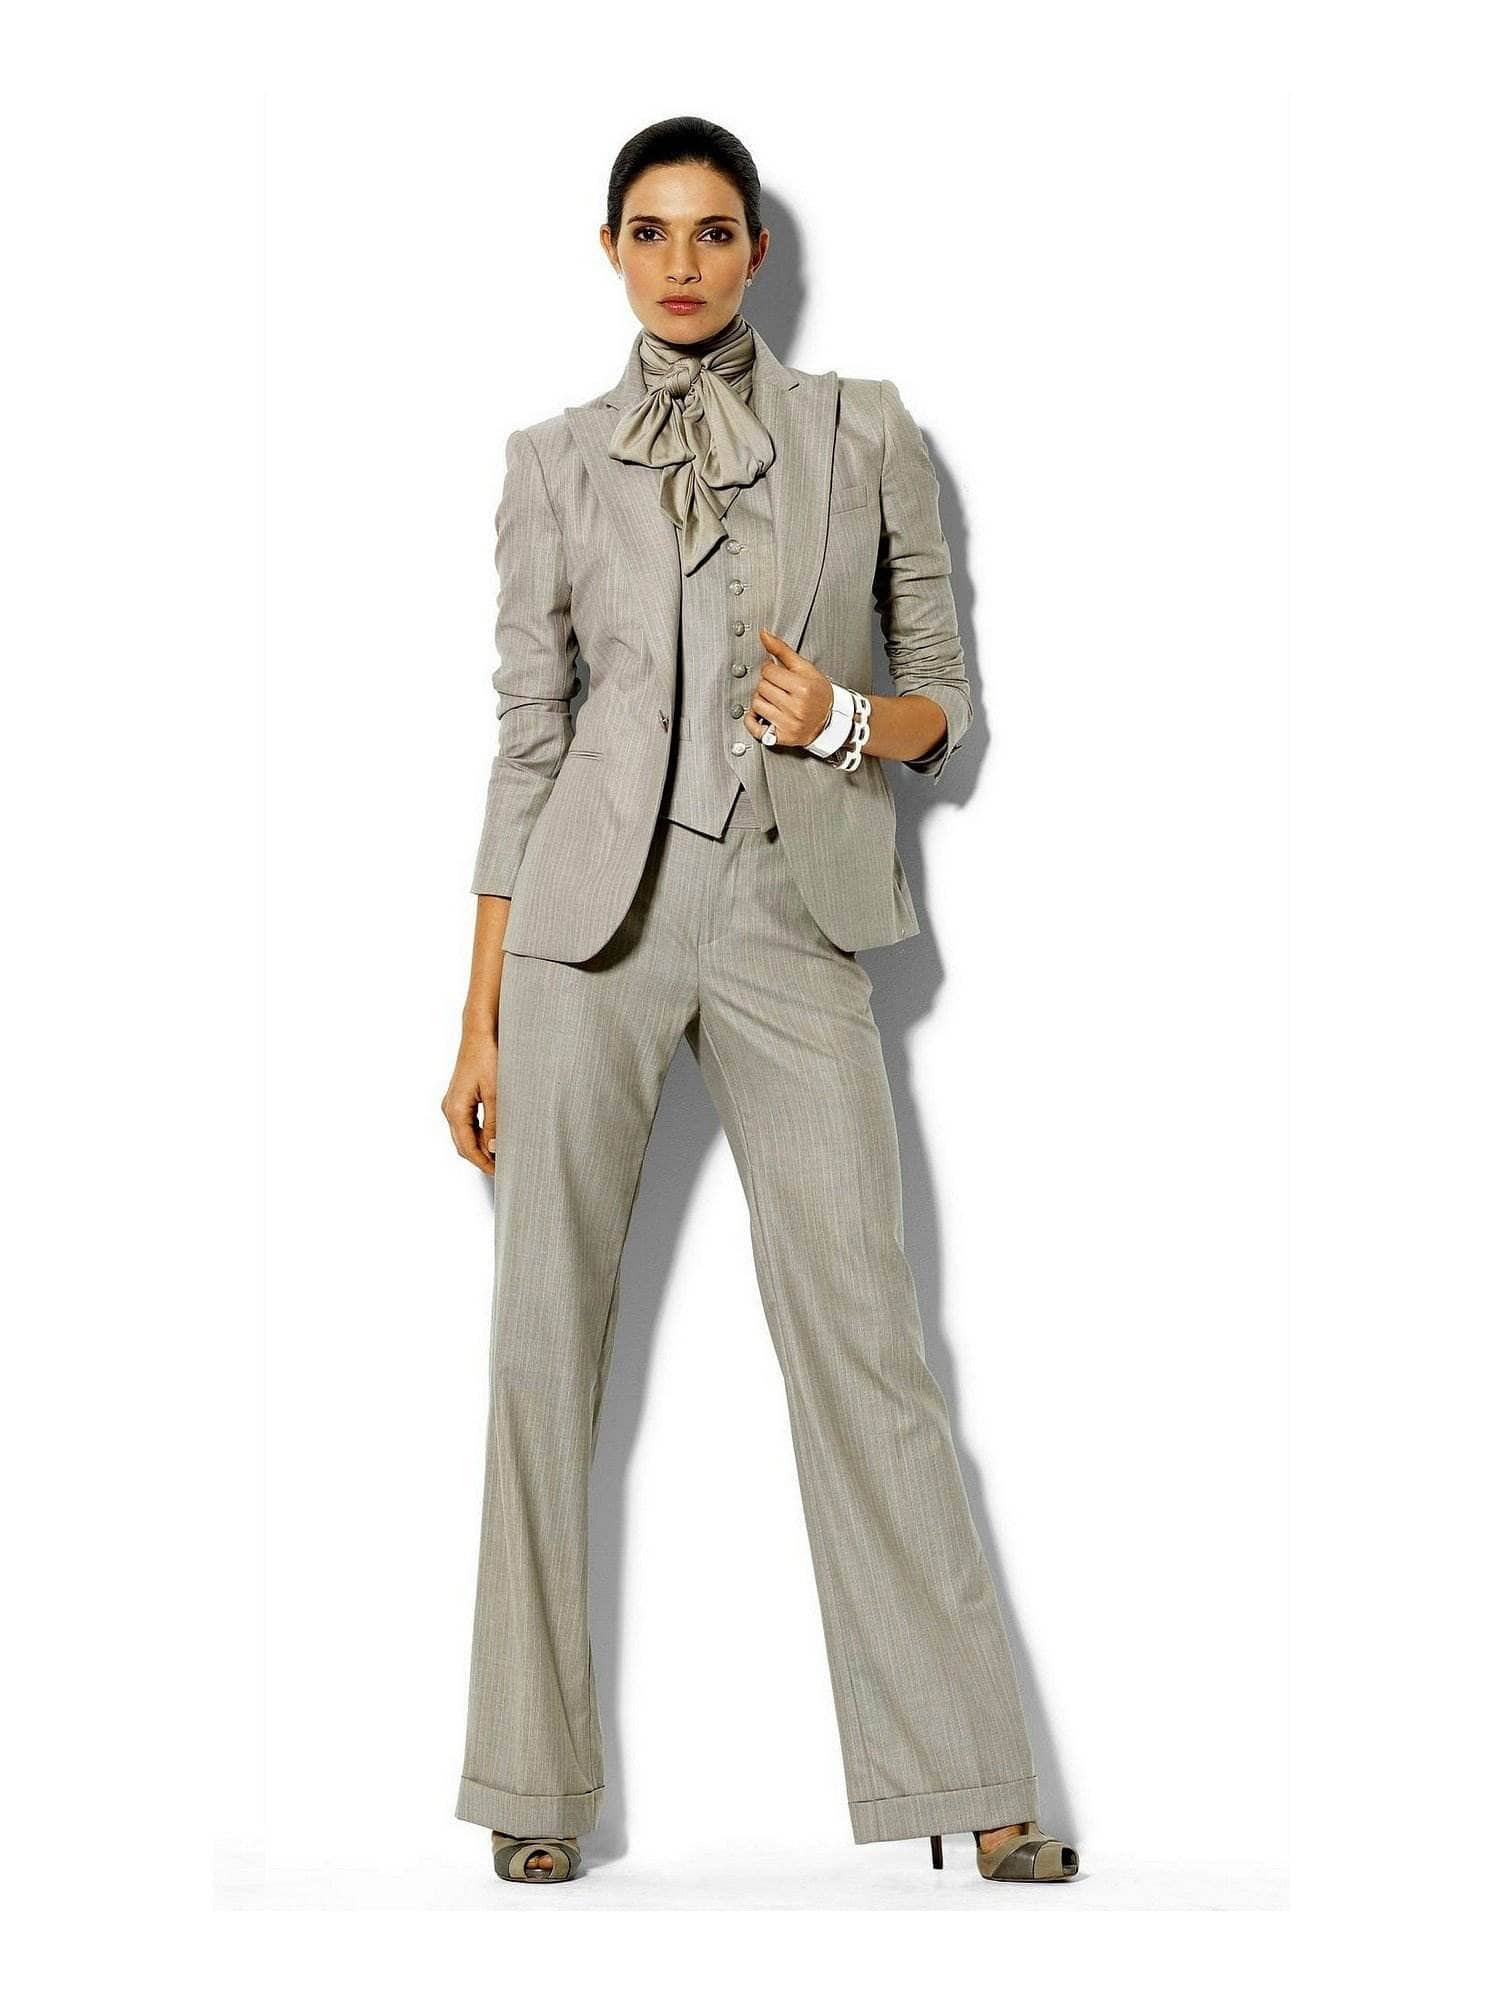 annabelle-demo1 Pants Striped Pantsuit